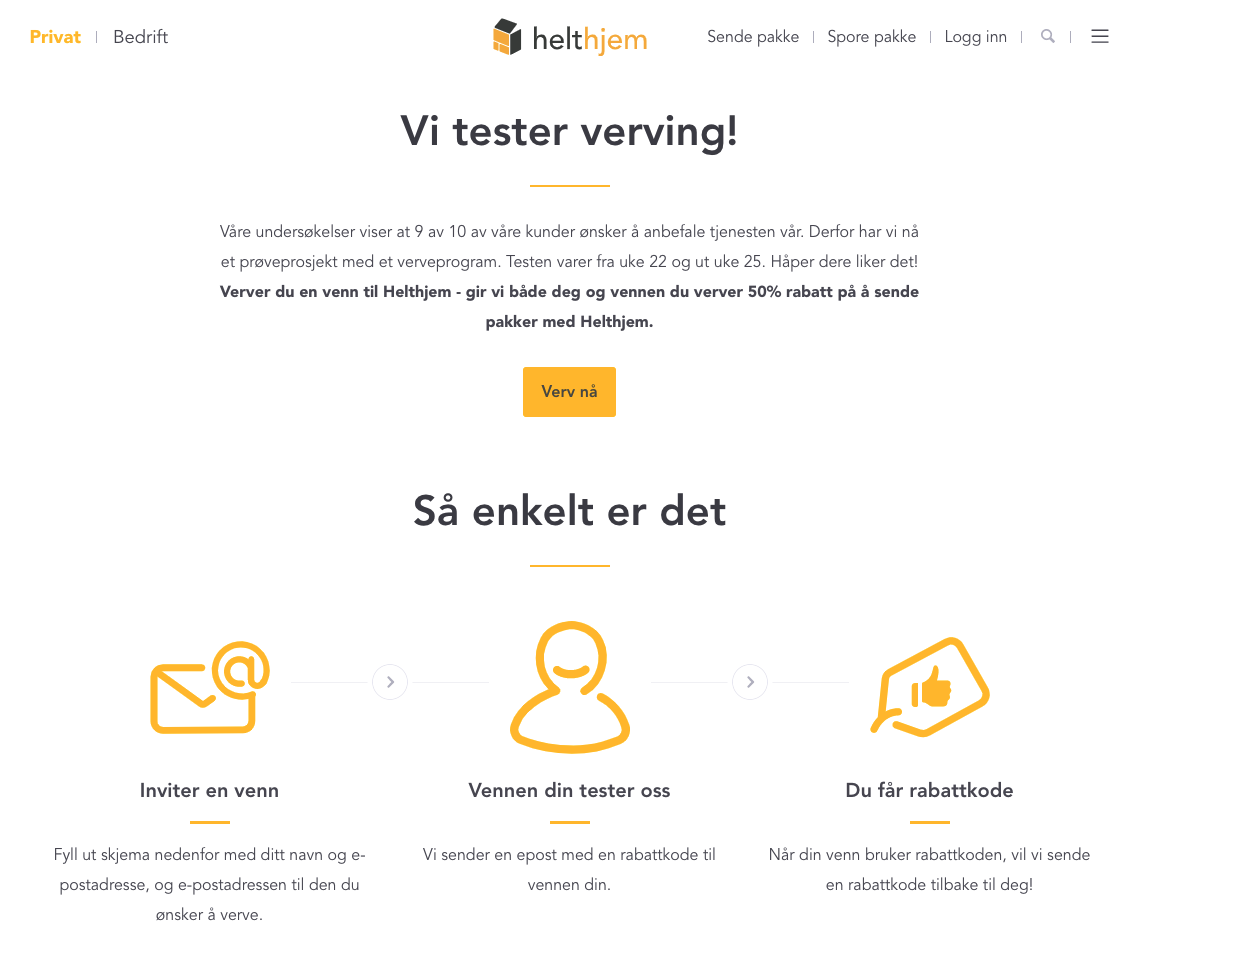 Helthjem referral rules